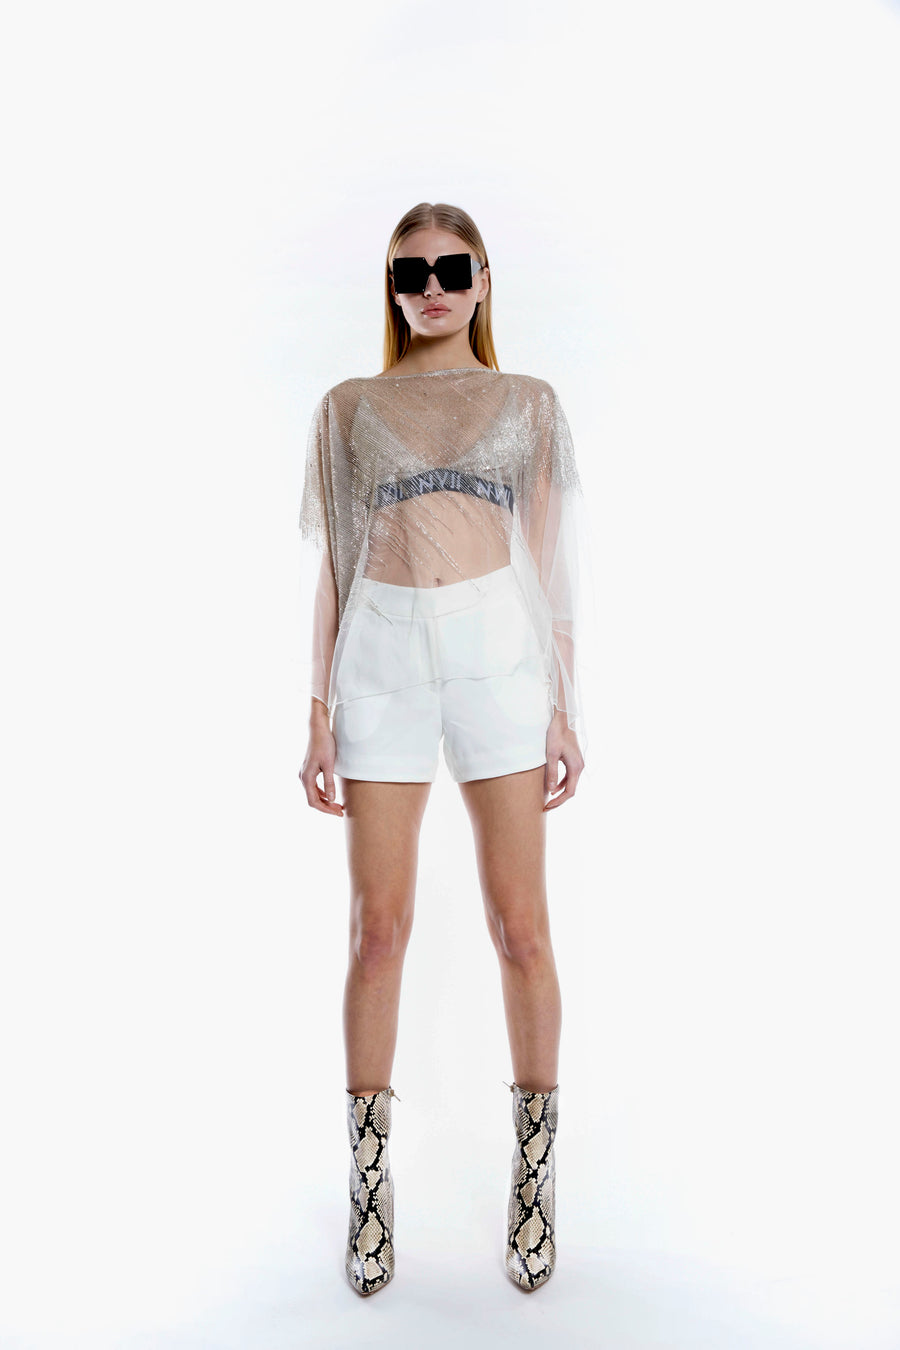 NOMAD VII - Agaming High Waisted Short - NOMAD VII X ANNE BOWEN